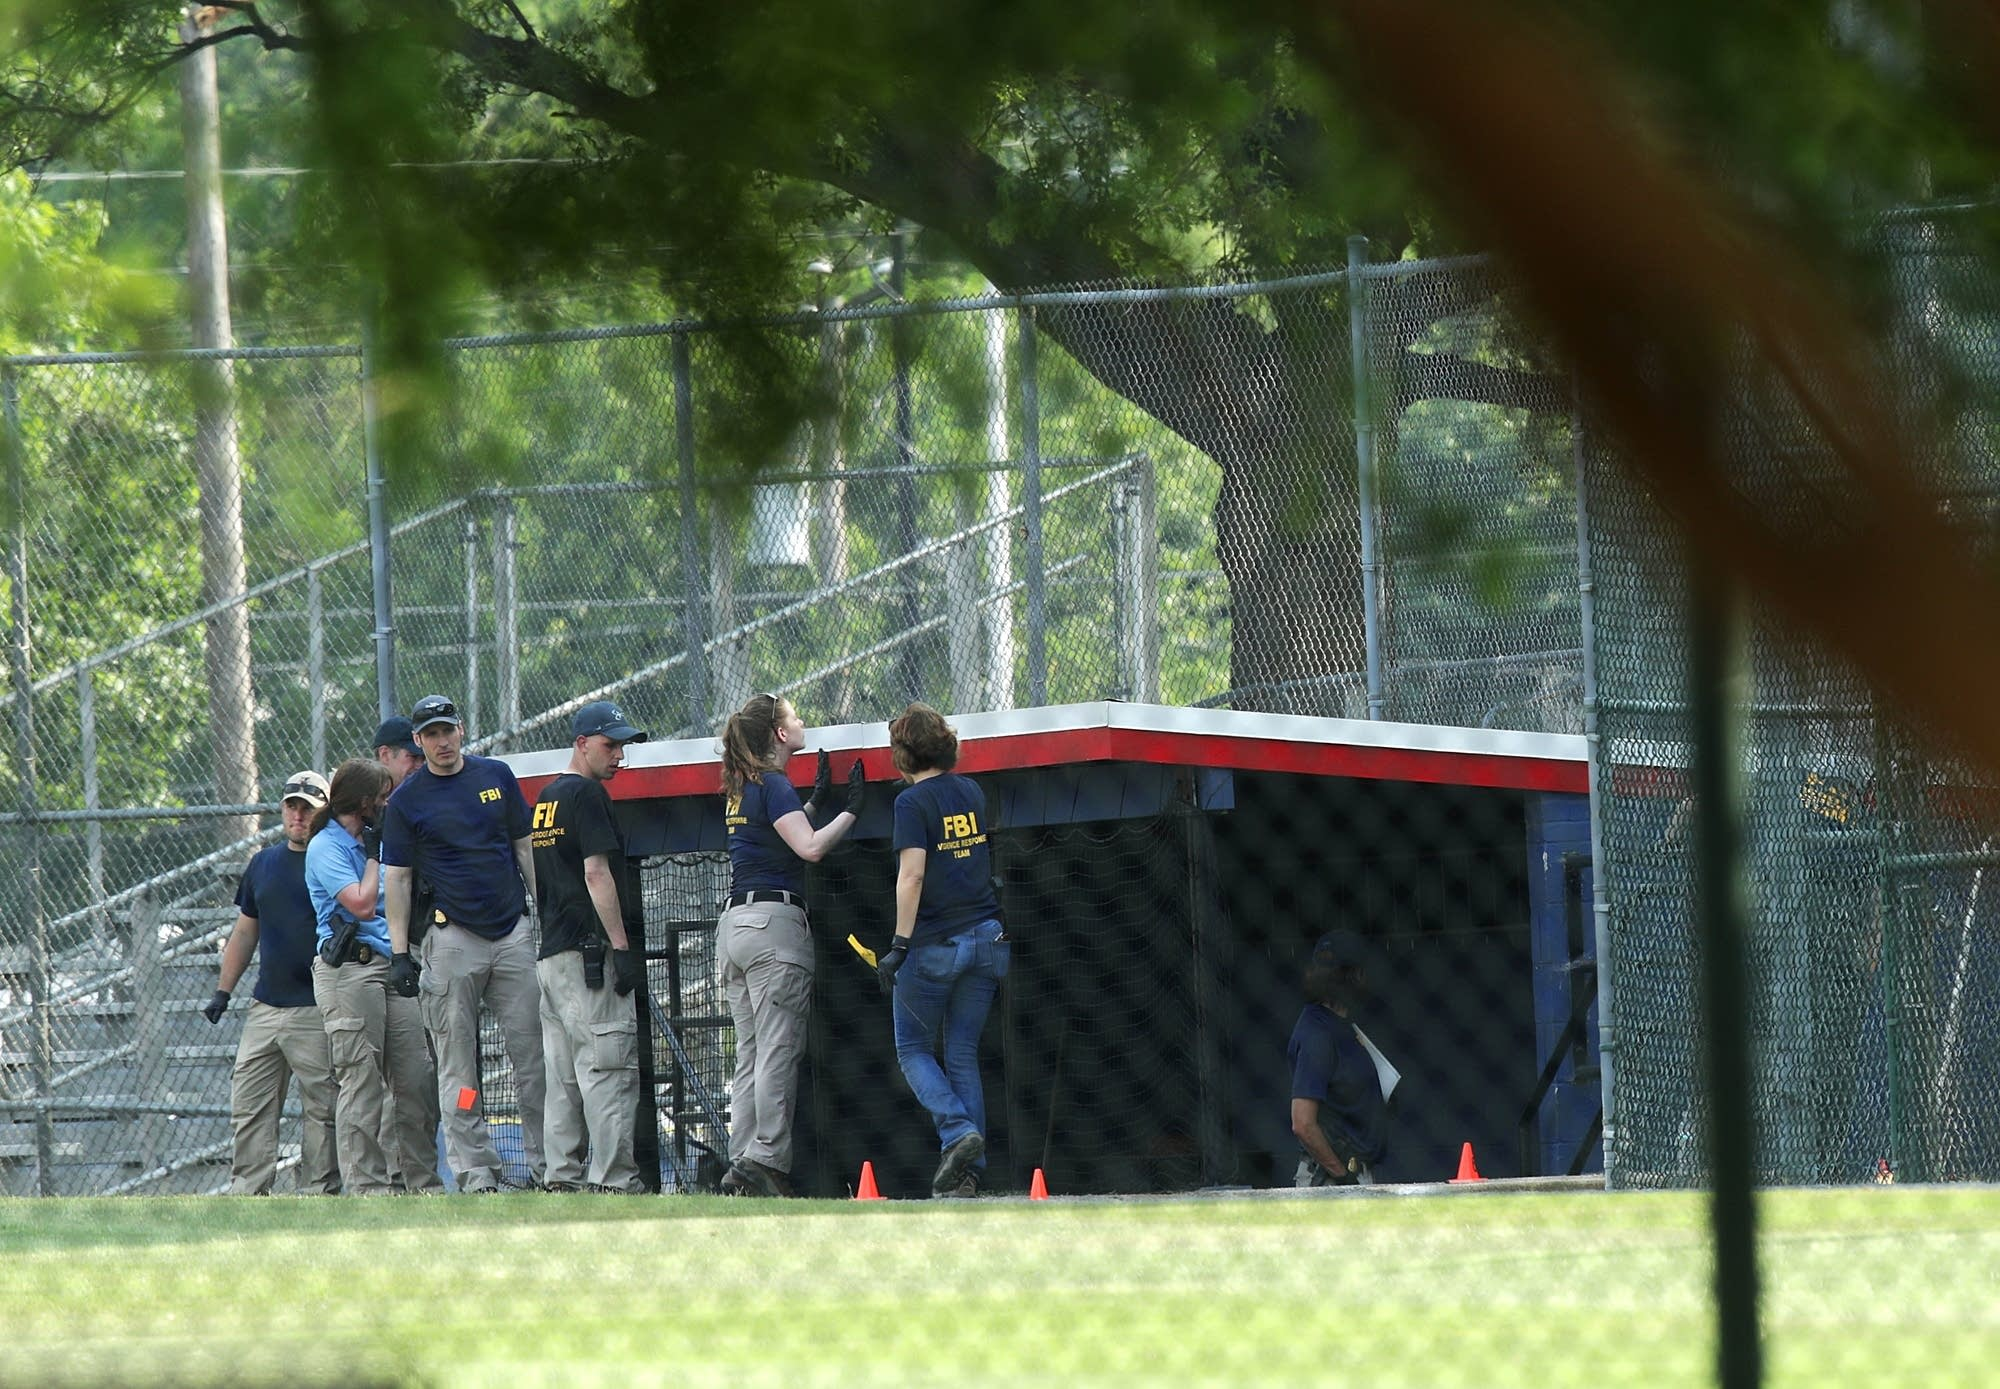 Republican lawmaker Steve Scalise, shot by gunman on Wednesday, making steady recovery